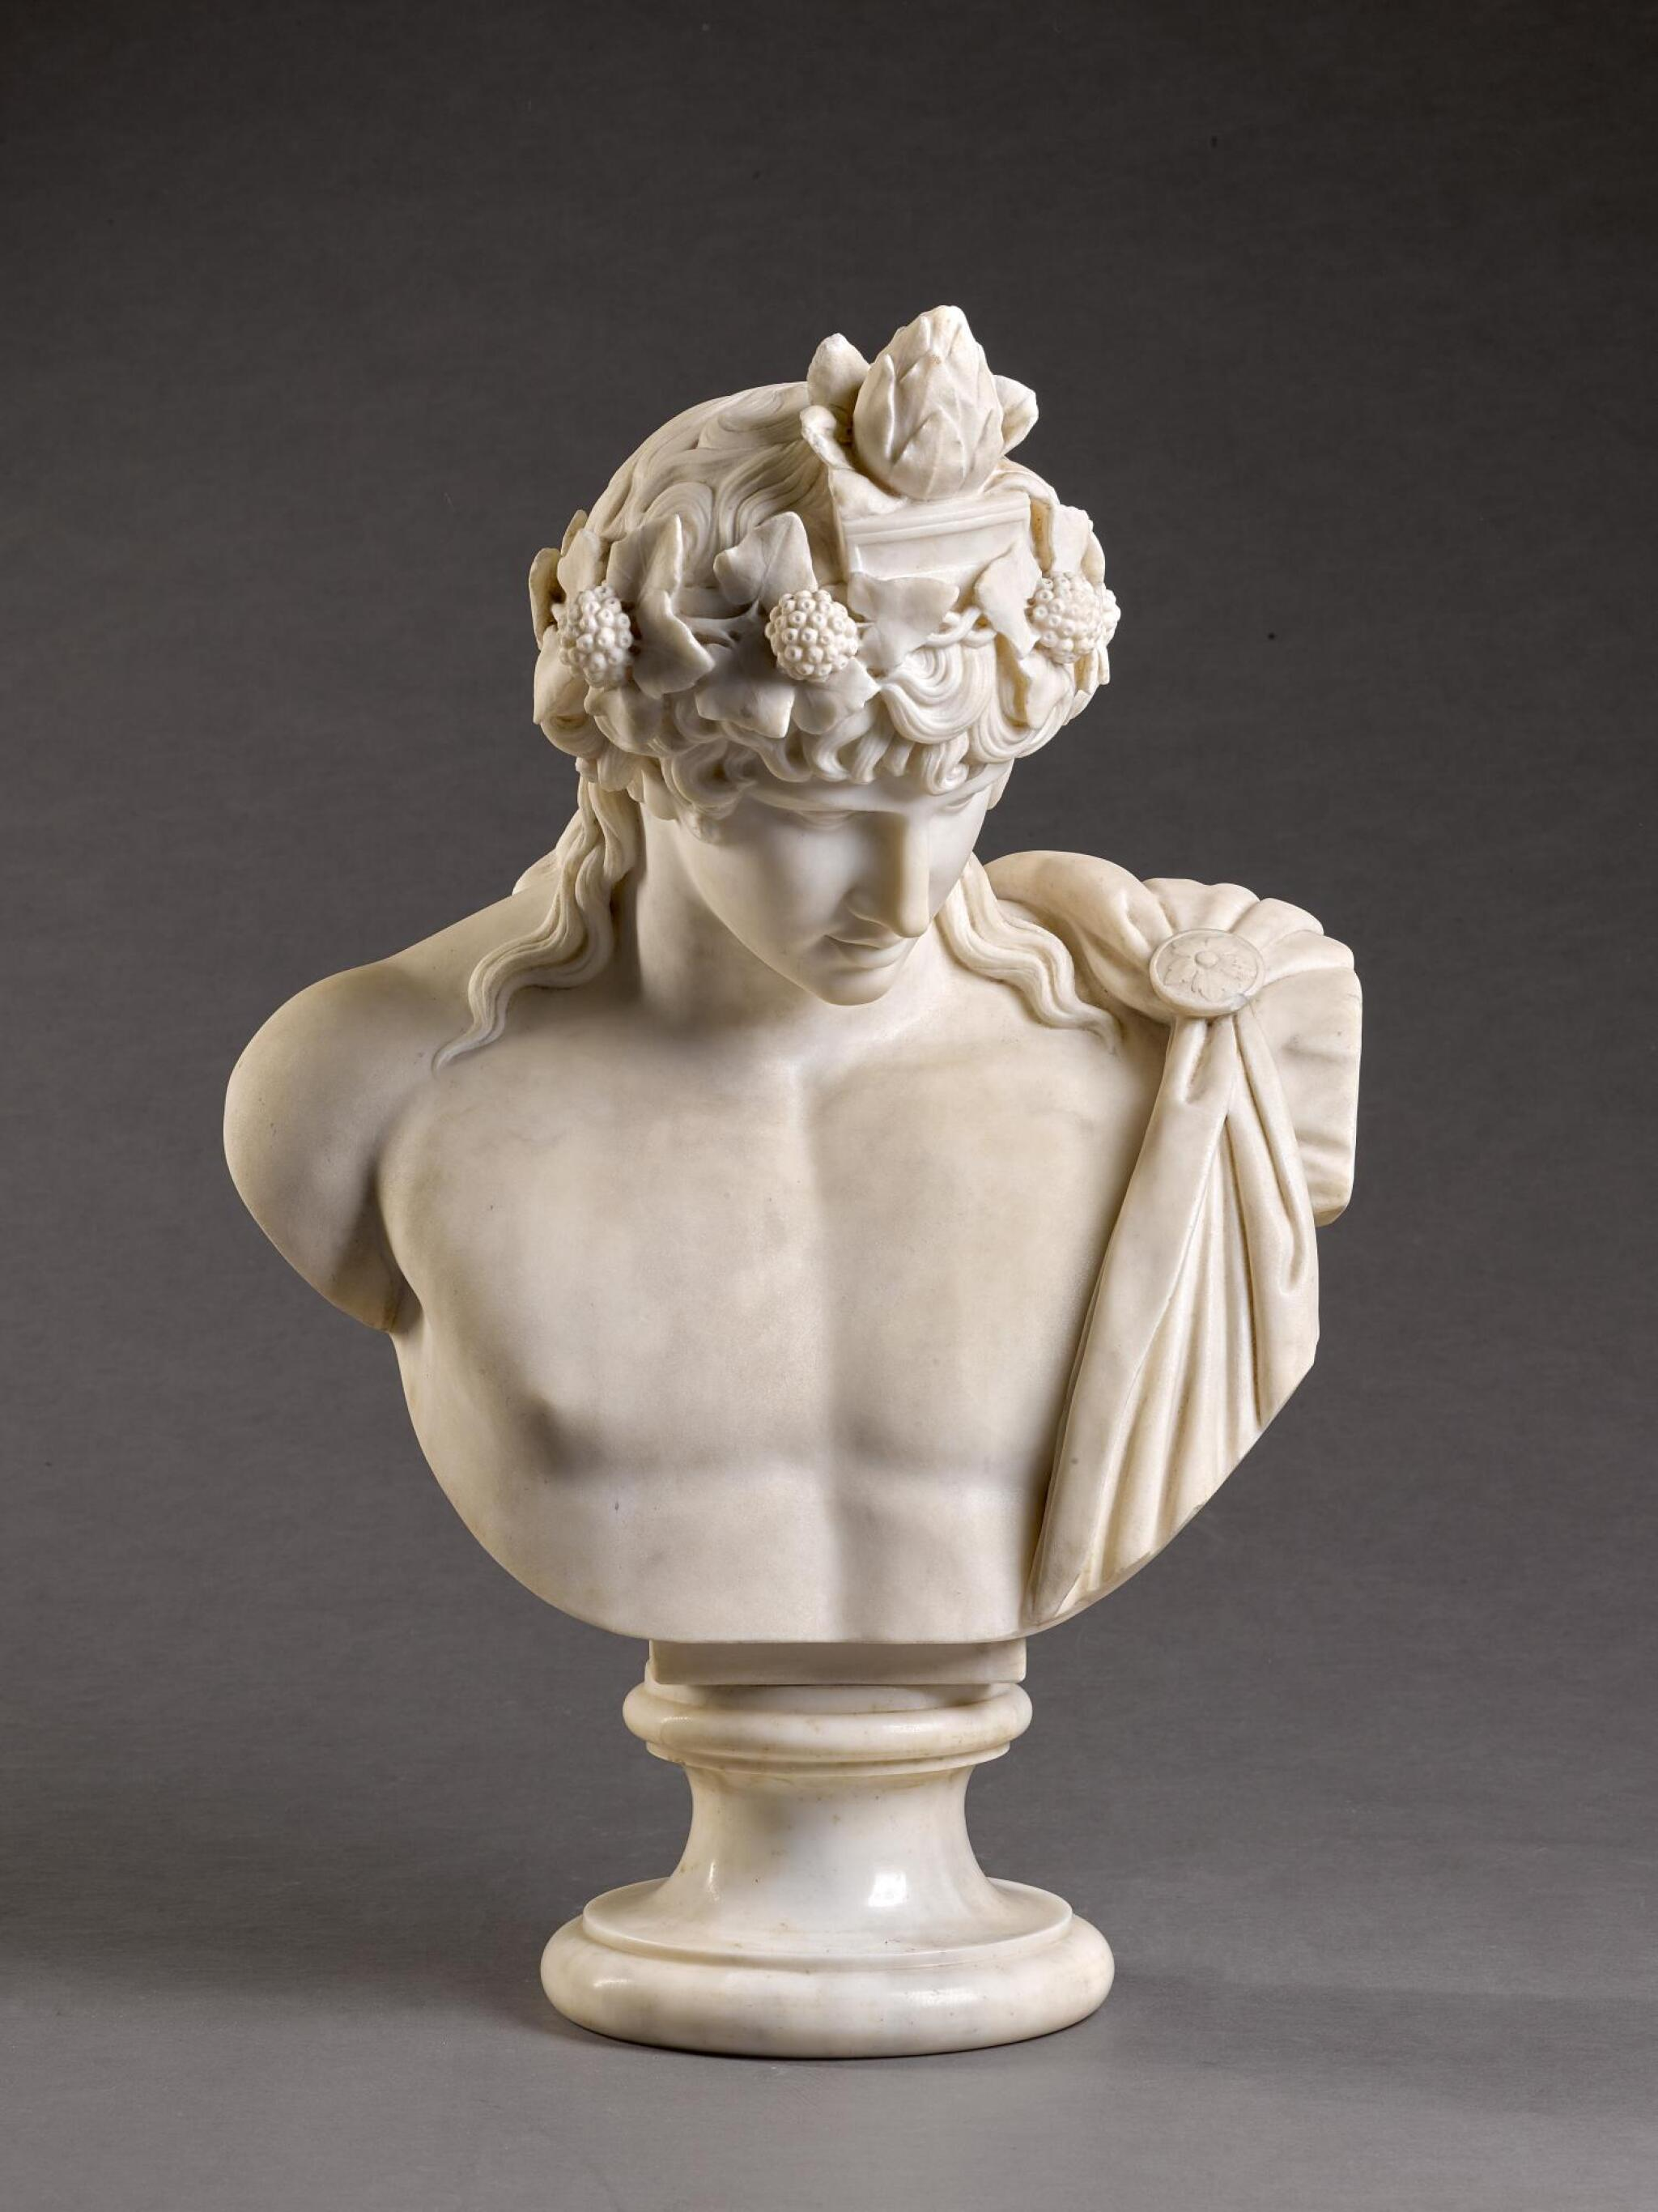 View 1 of Lot 4. ITALIAN, 19TH CENTURY, AFTER THE ANTIQUE | BUST OF ANTINOUS.